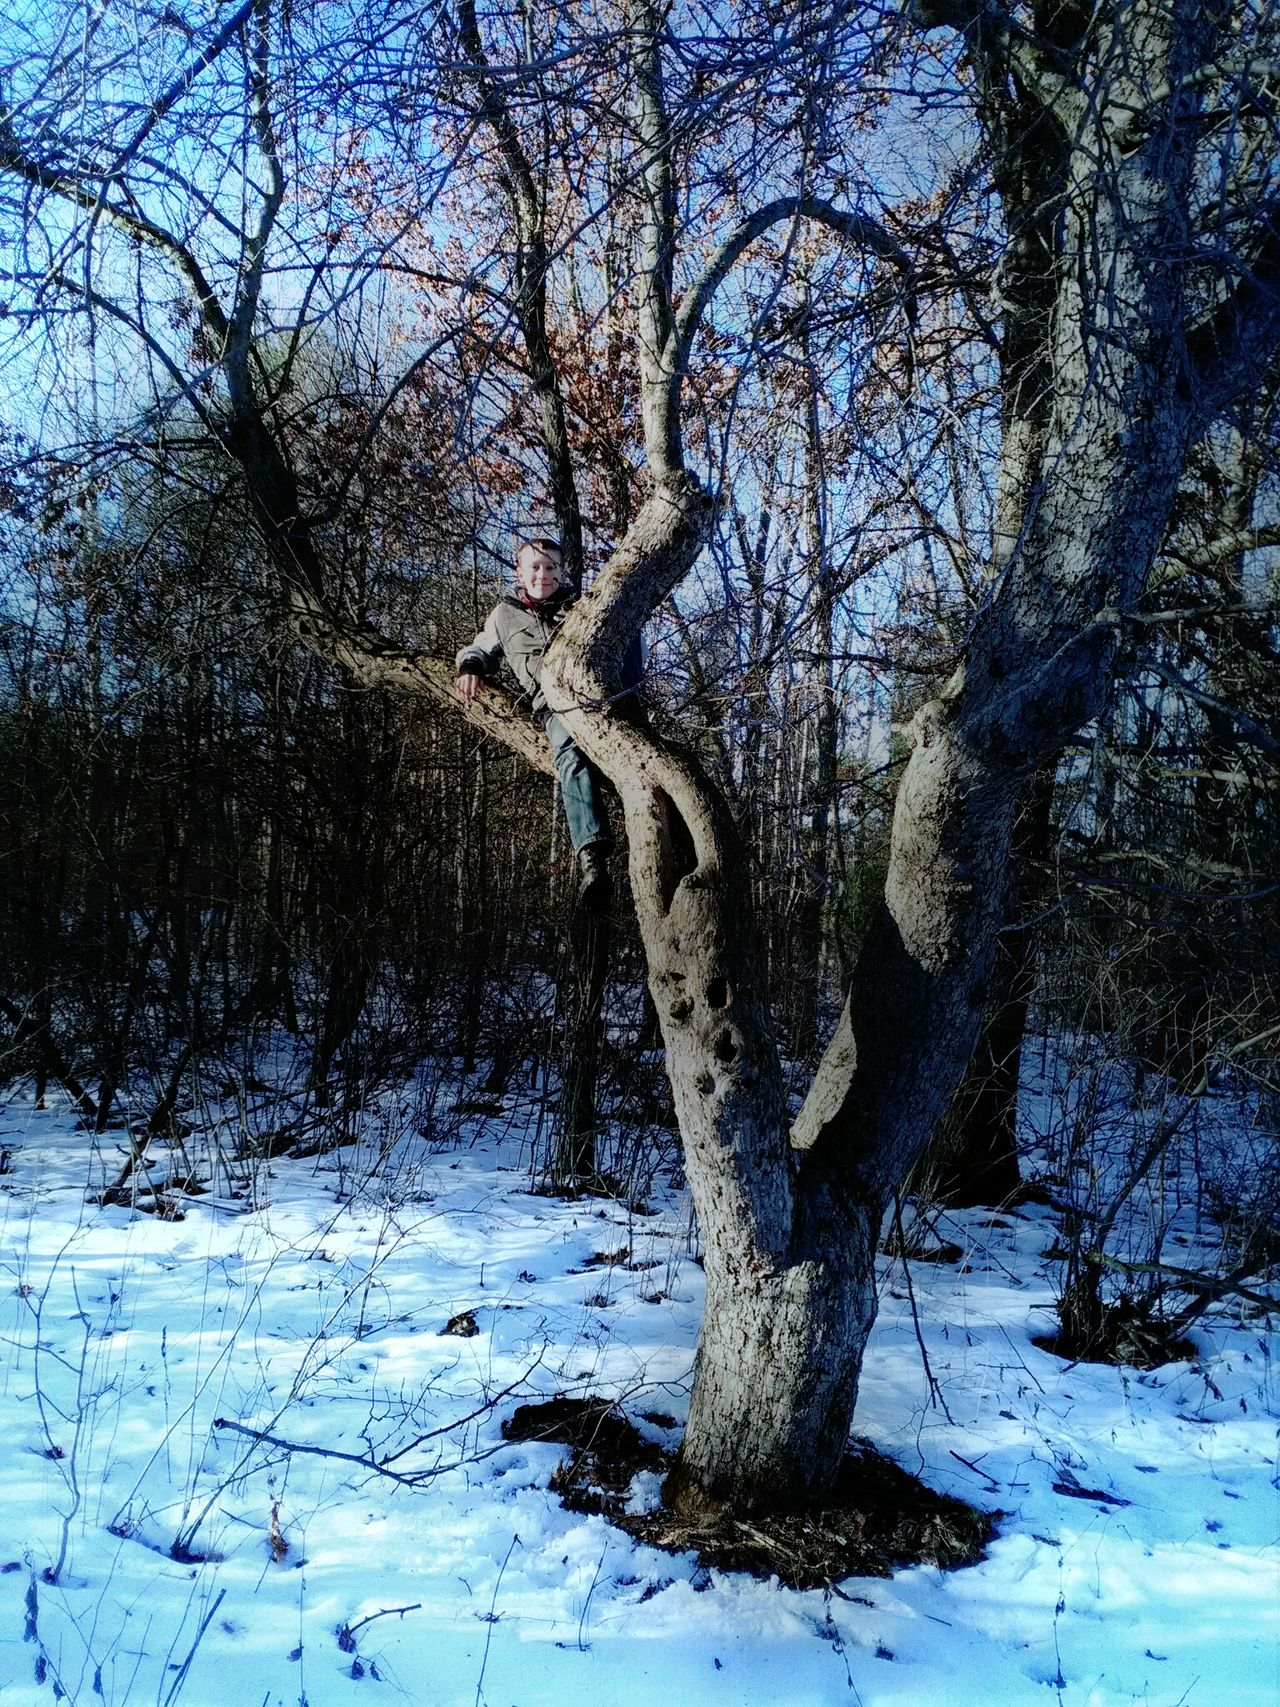 Tree Nature Winter Beauty In Nature Bare Tree Tranquility Outdoors Close-up Growth My Son ❤ Climbing Trees Having Fun :) Nature Photography My Photography. ❤ Check This Out 😊 My Point Of View Michigan Up North Hello World ✌ Real Photography Cold Outside ❄⛄  Real People, Real Lives Michigan Outdoors 2017 New Year My Love My Favorite Place